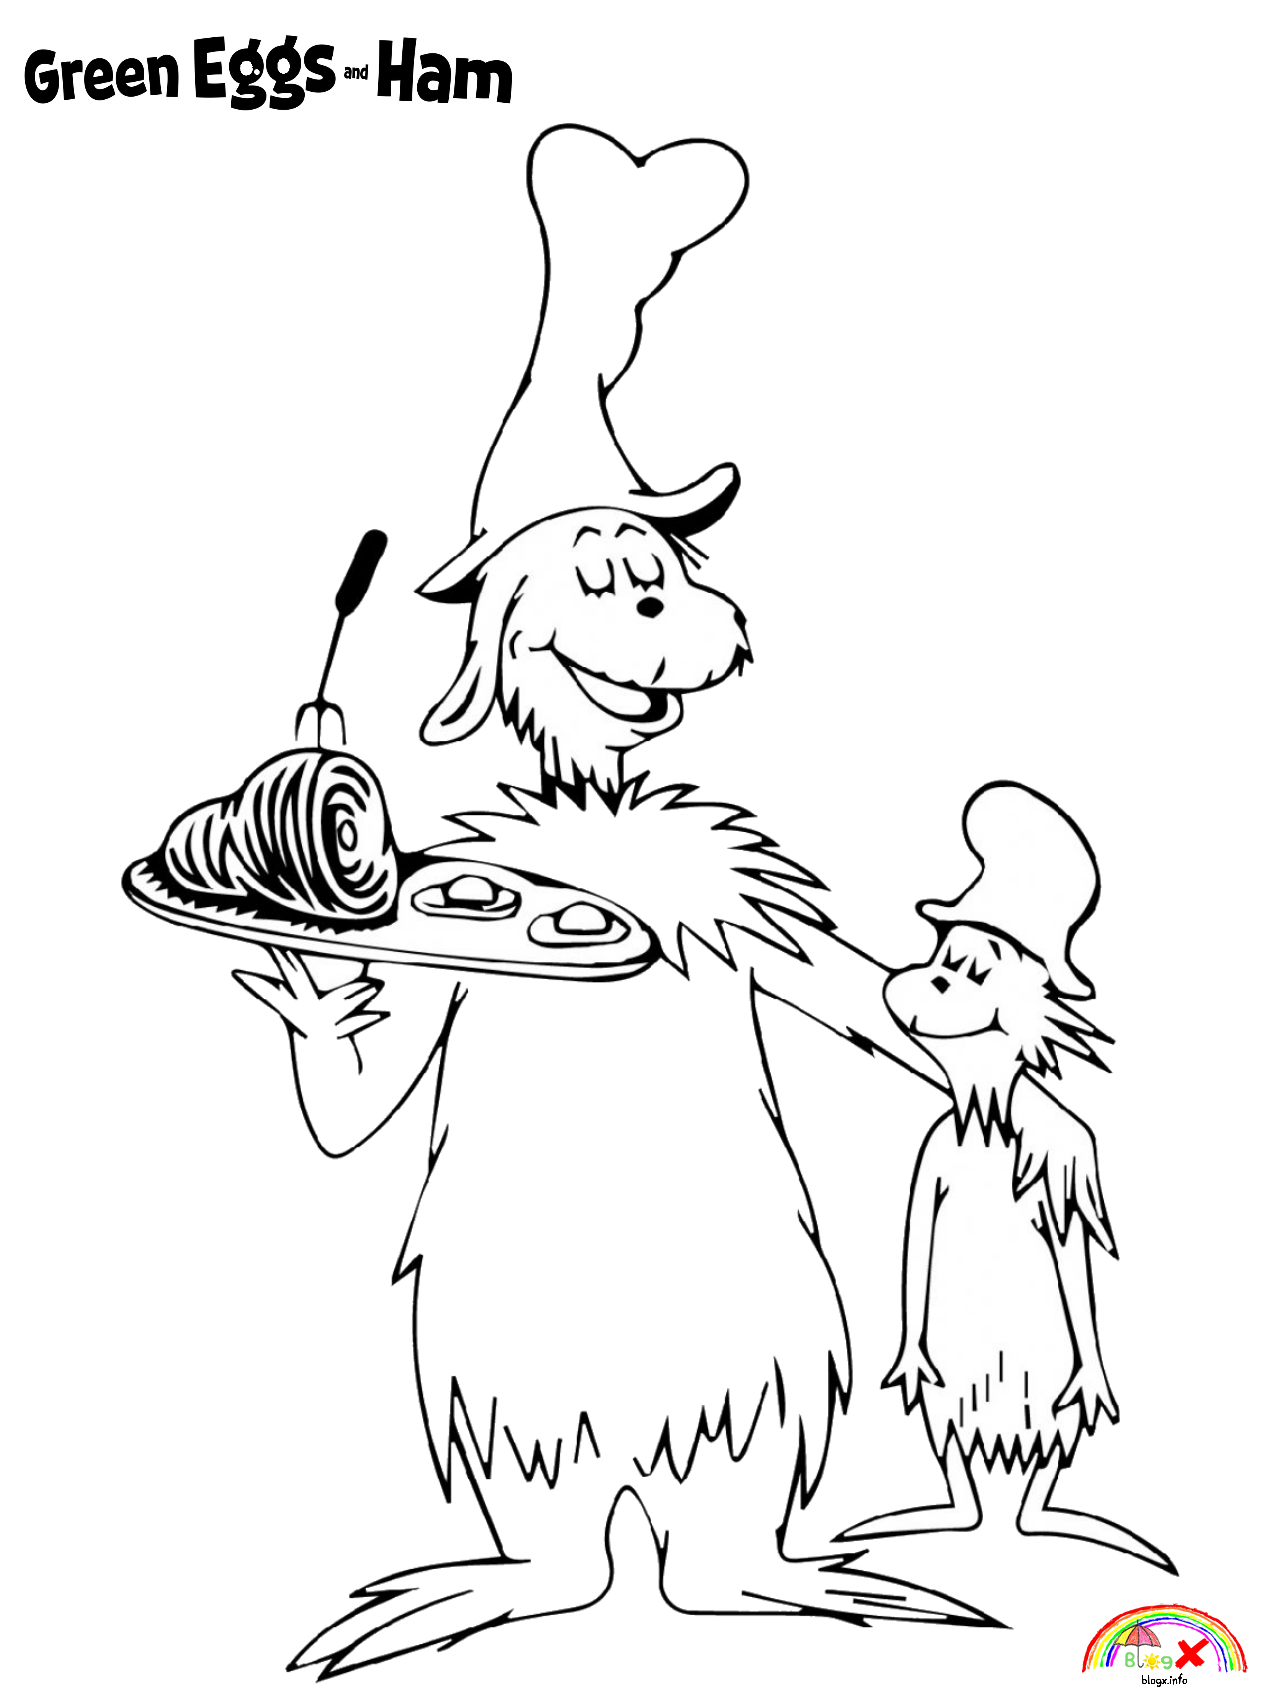 Dr Seuss Green Eggs And Ham Free Coloring Pages In 2020 Dr Seuss Coloring Pages